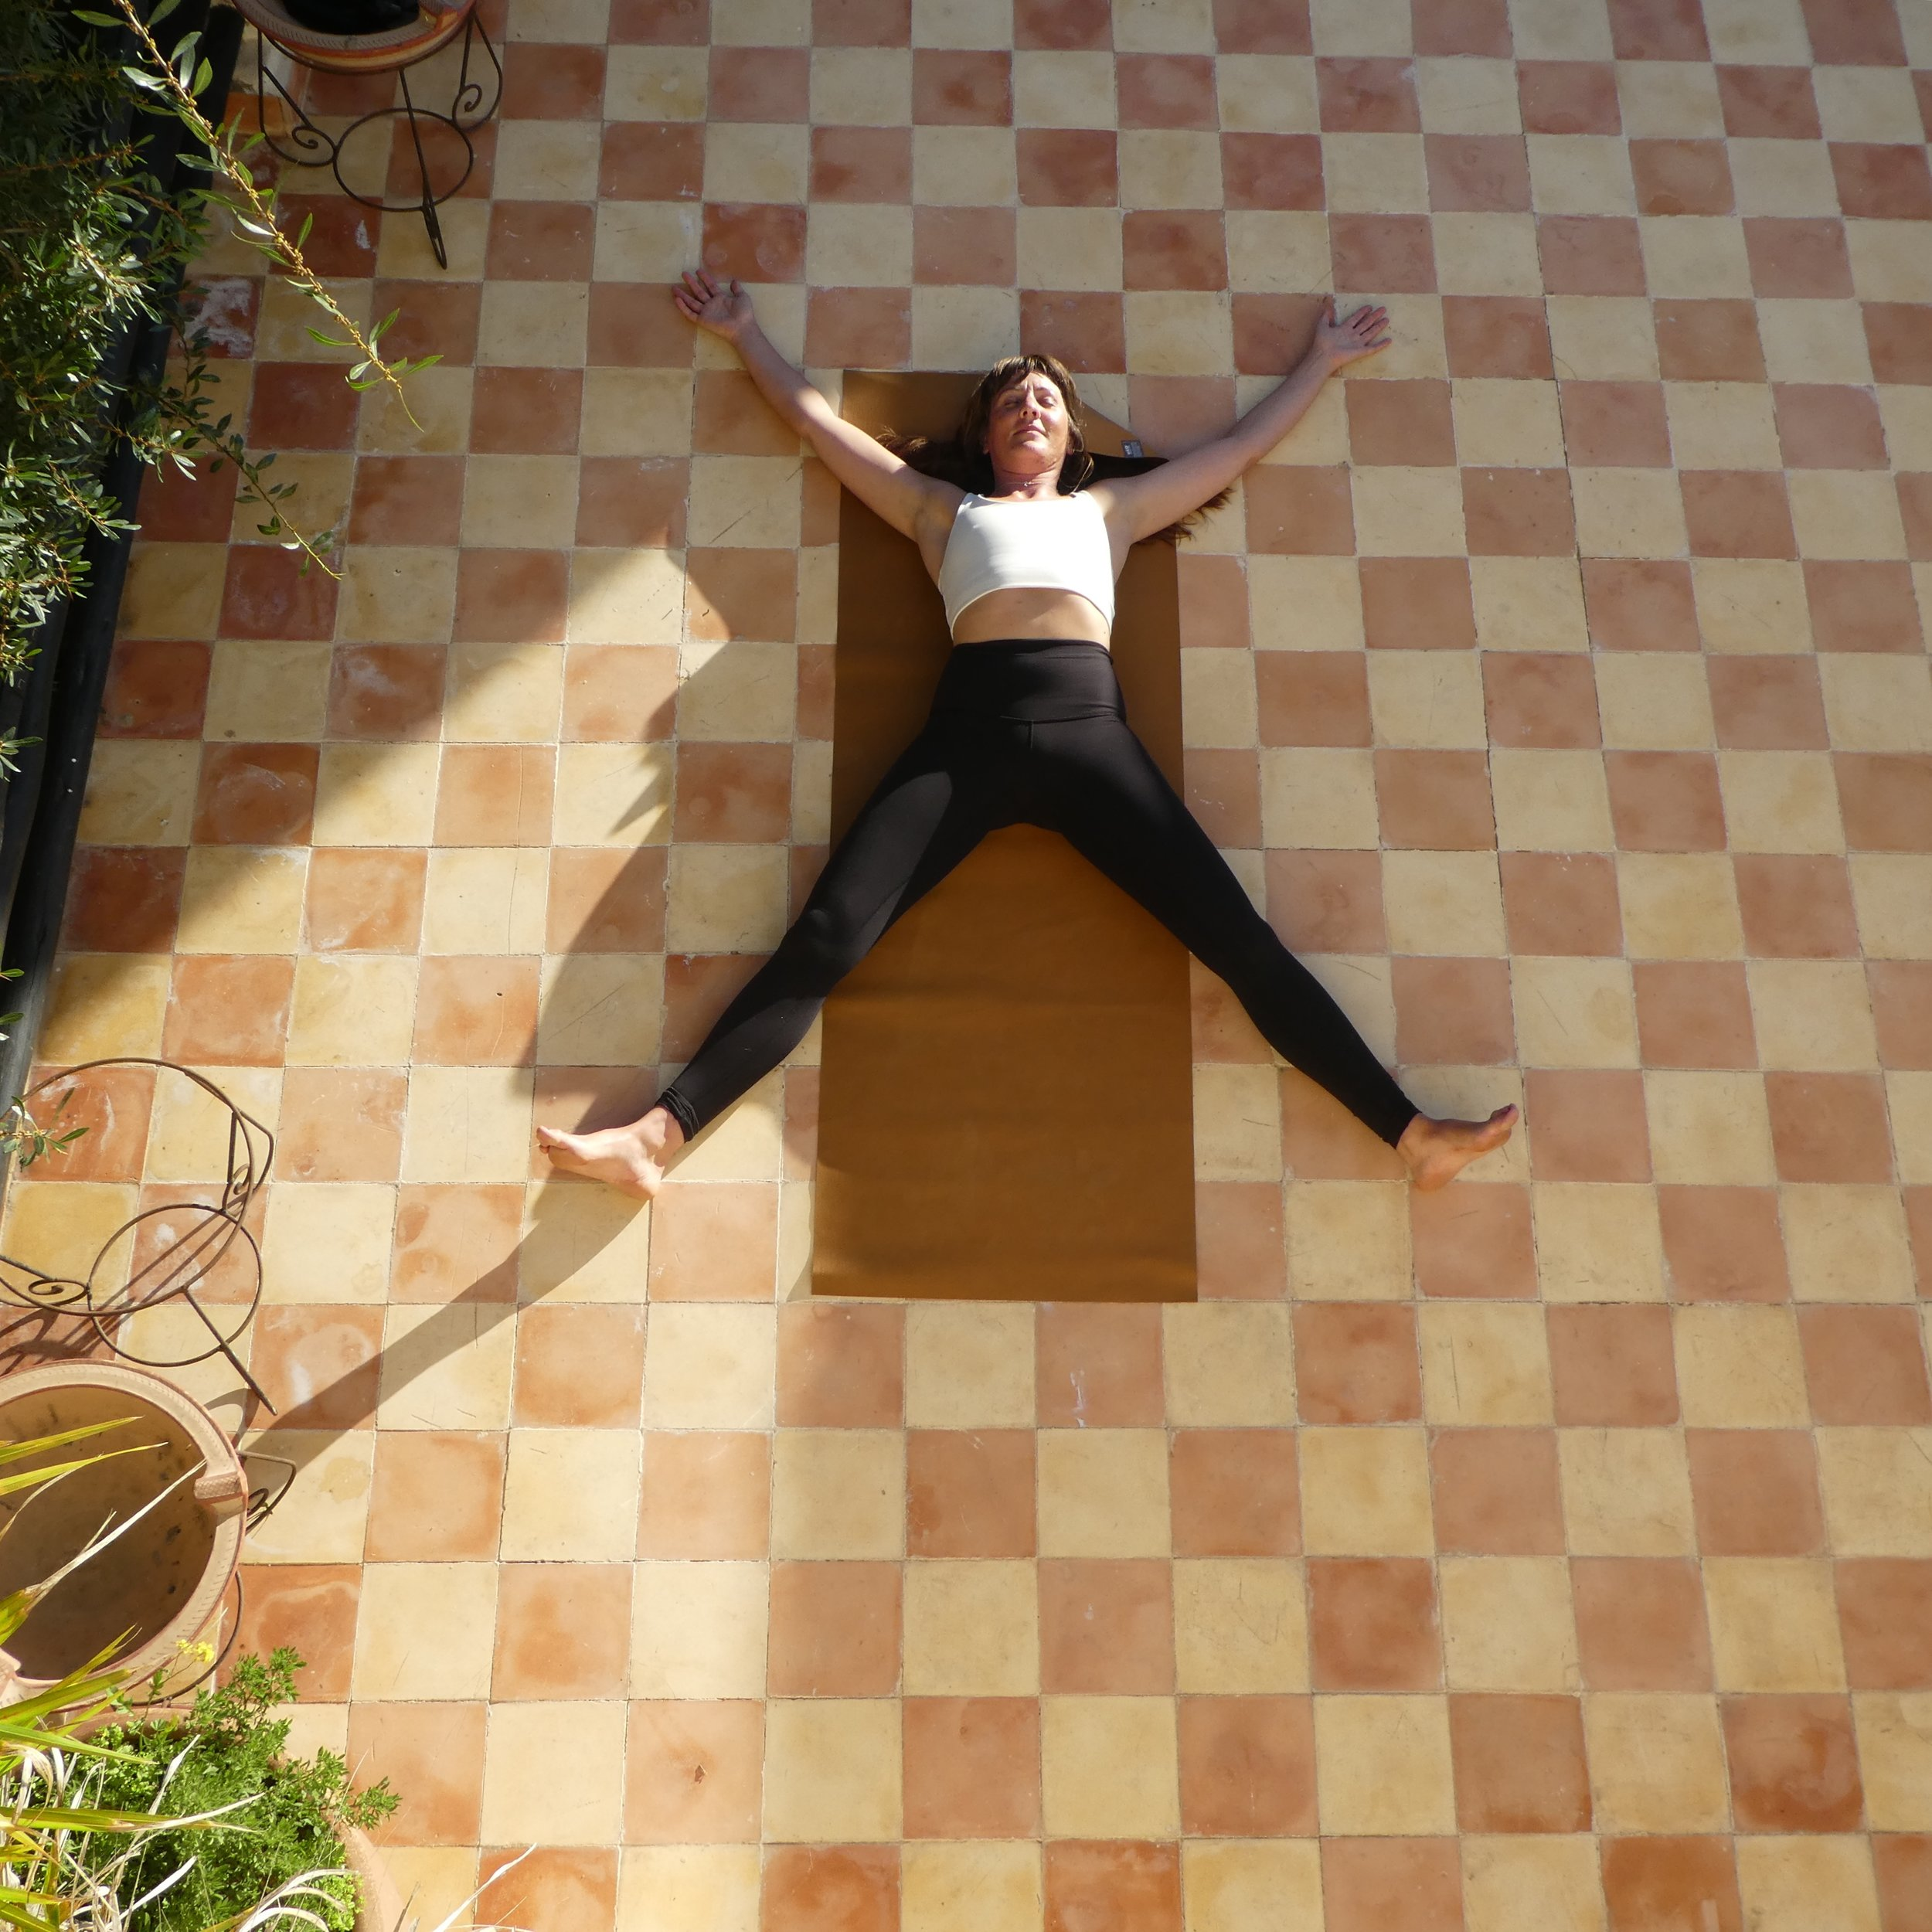 Pentacle - A brighter version of savasana for the lighter months. Legs and arms spread wide then surrender to the floor.